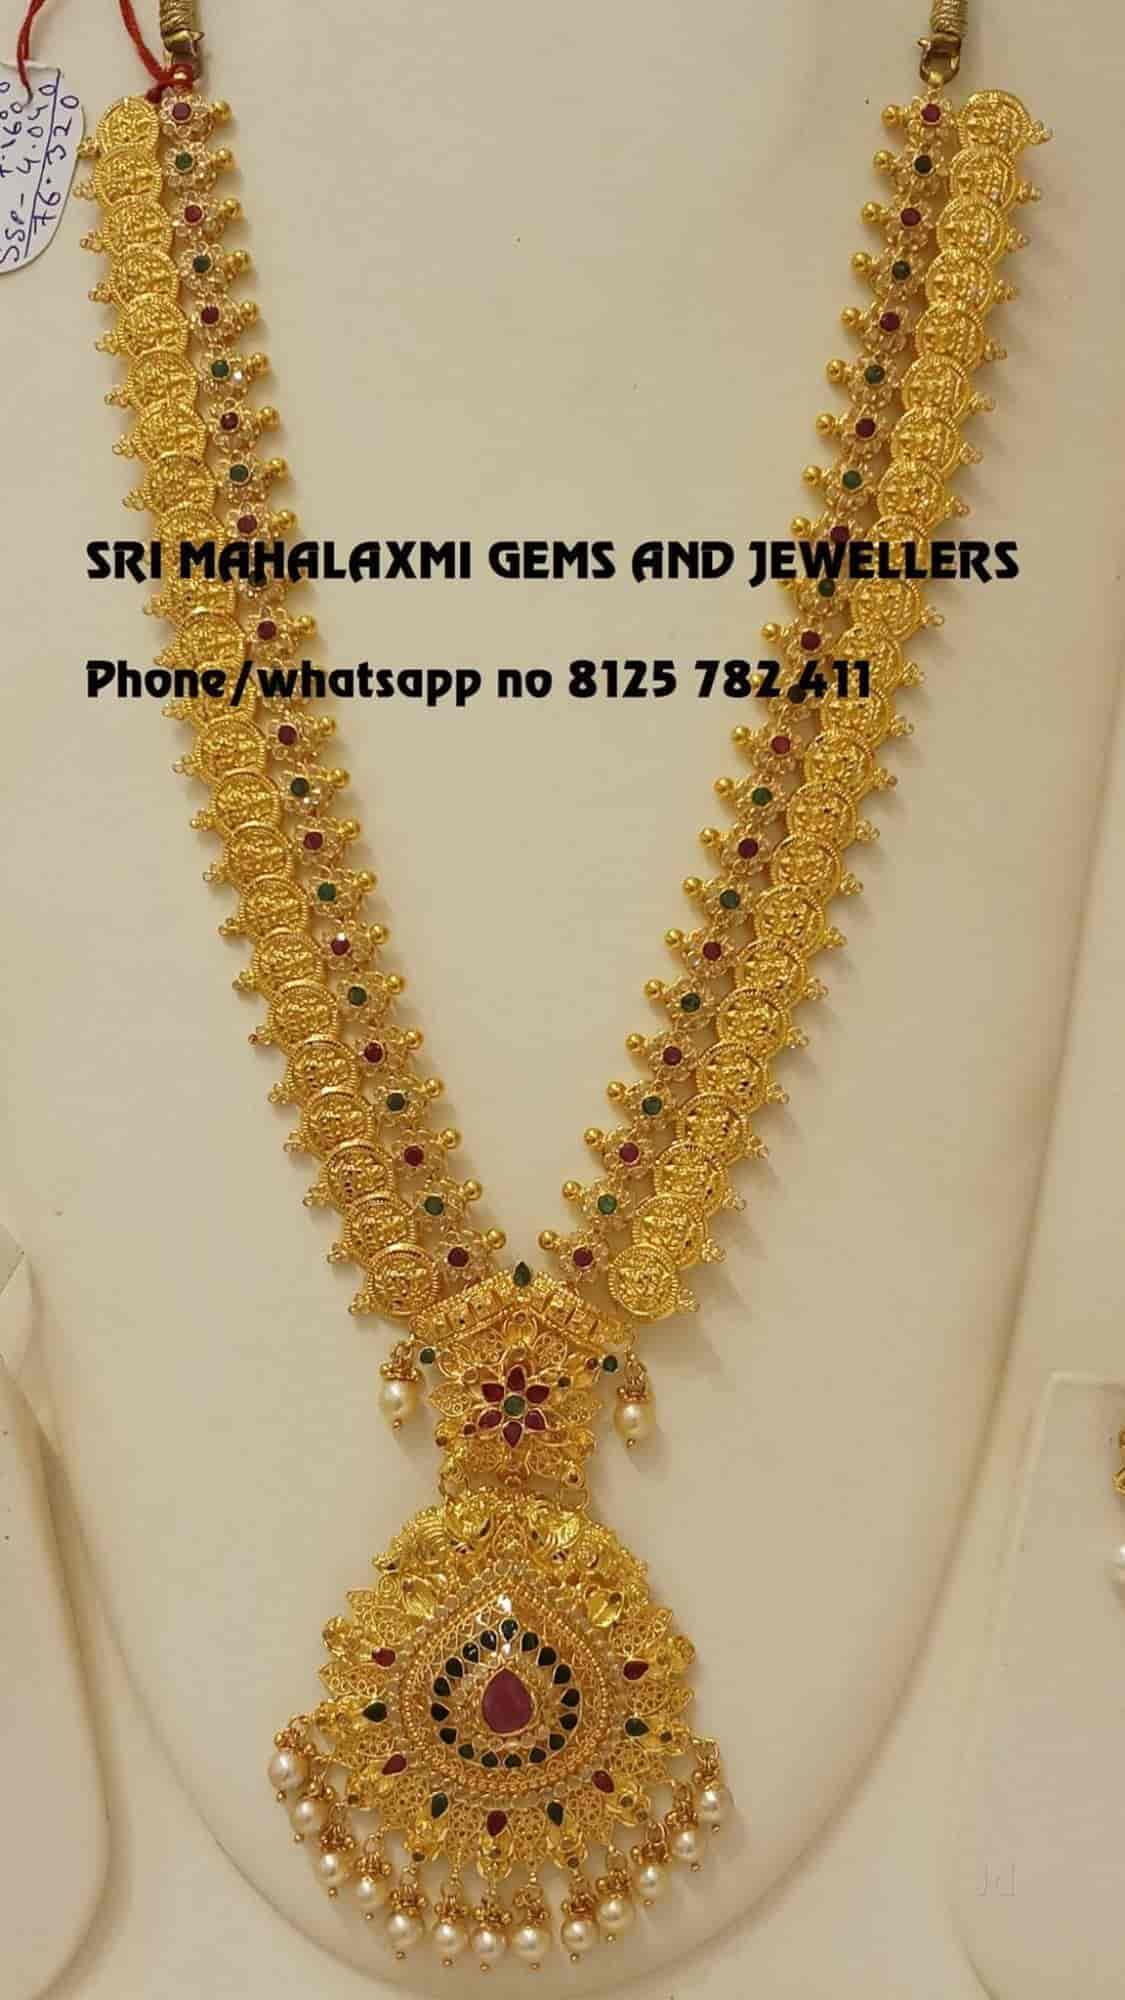 wedding cards in hyderabad general bazar%0A SRI Mahalaxmi GEMS AND Jewellers  Sri Mahaluxmi Gems And Jewellers   Jewellery Showrooms in Hyderabad  Justdial